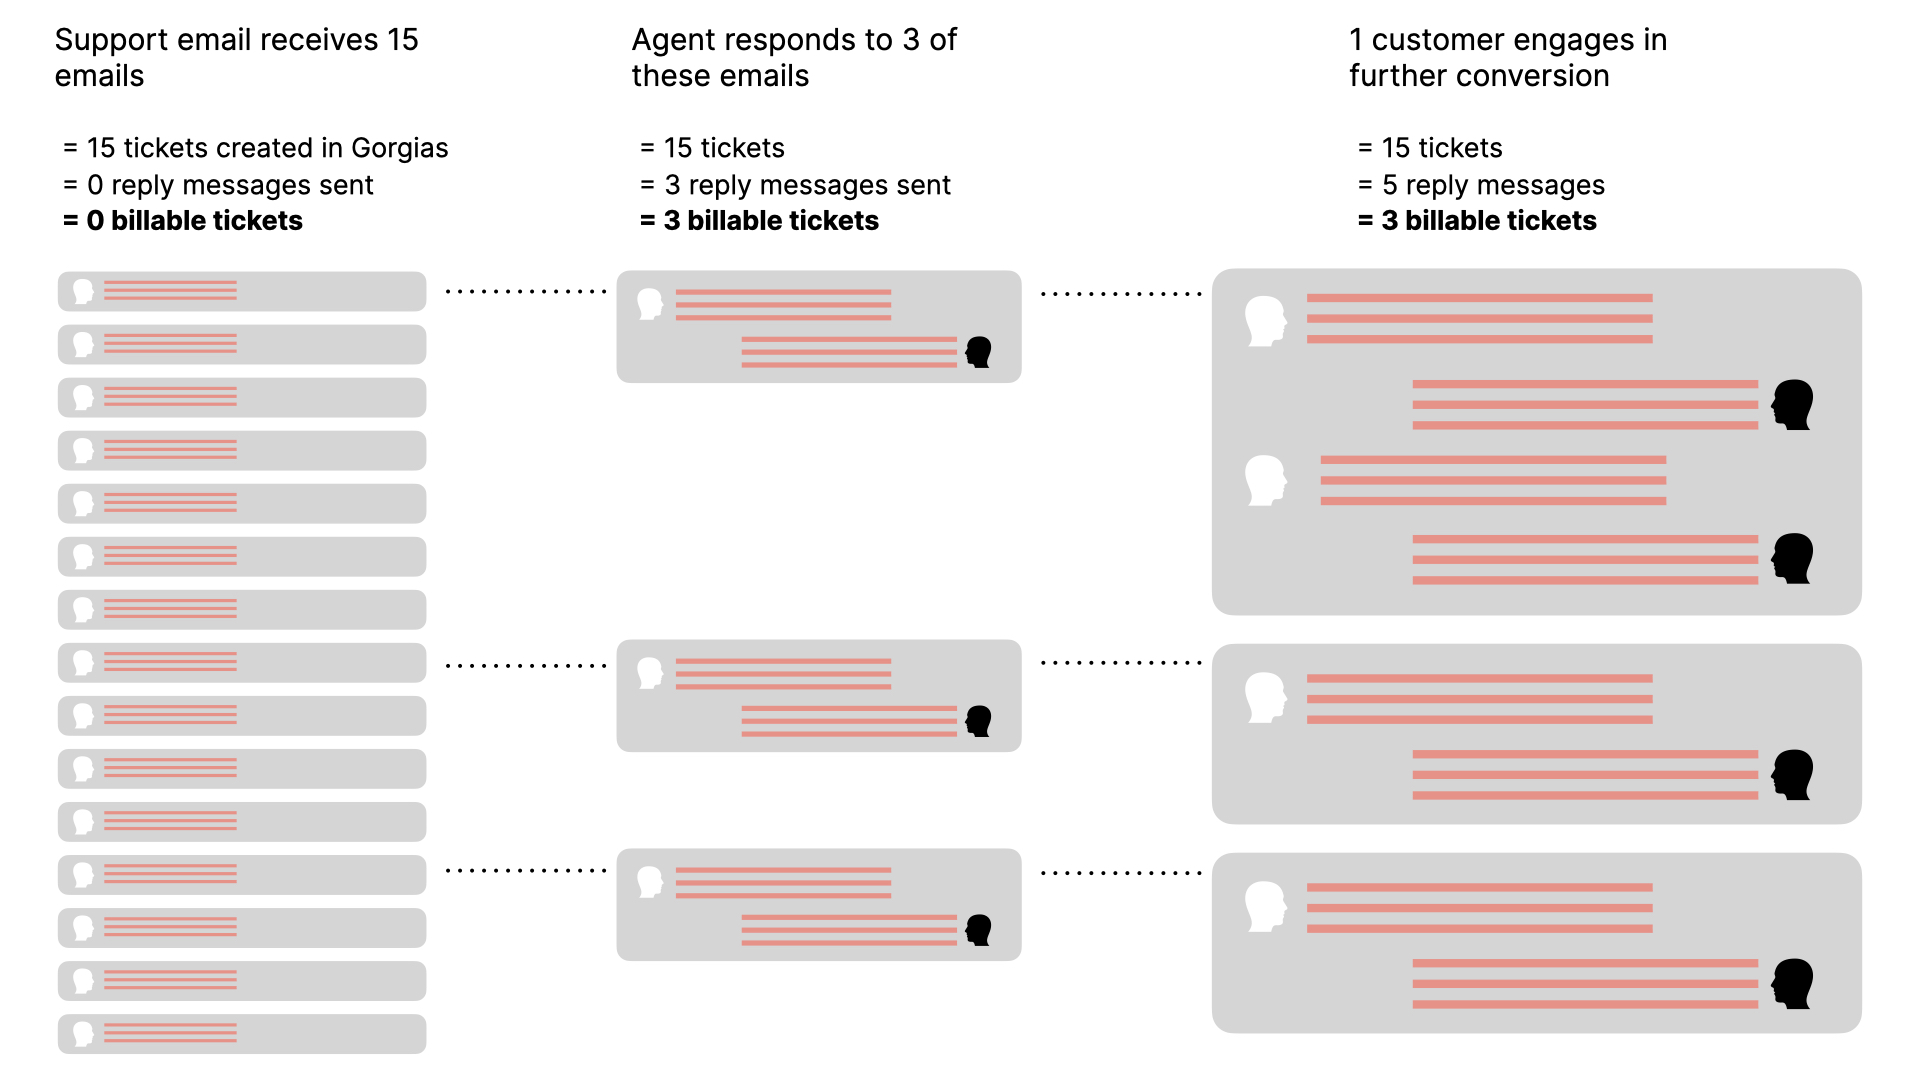 Illustration of email communication showing which tickets are billable